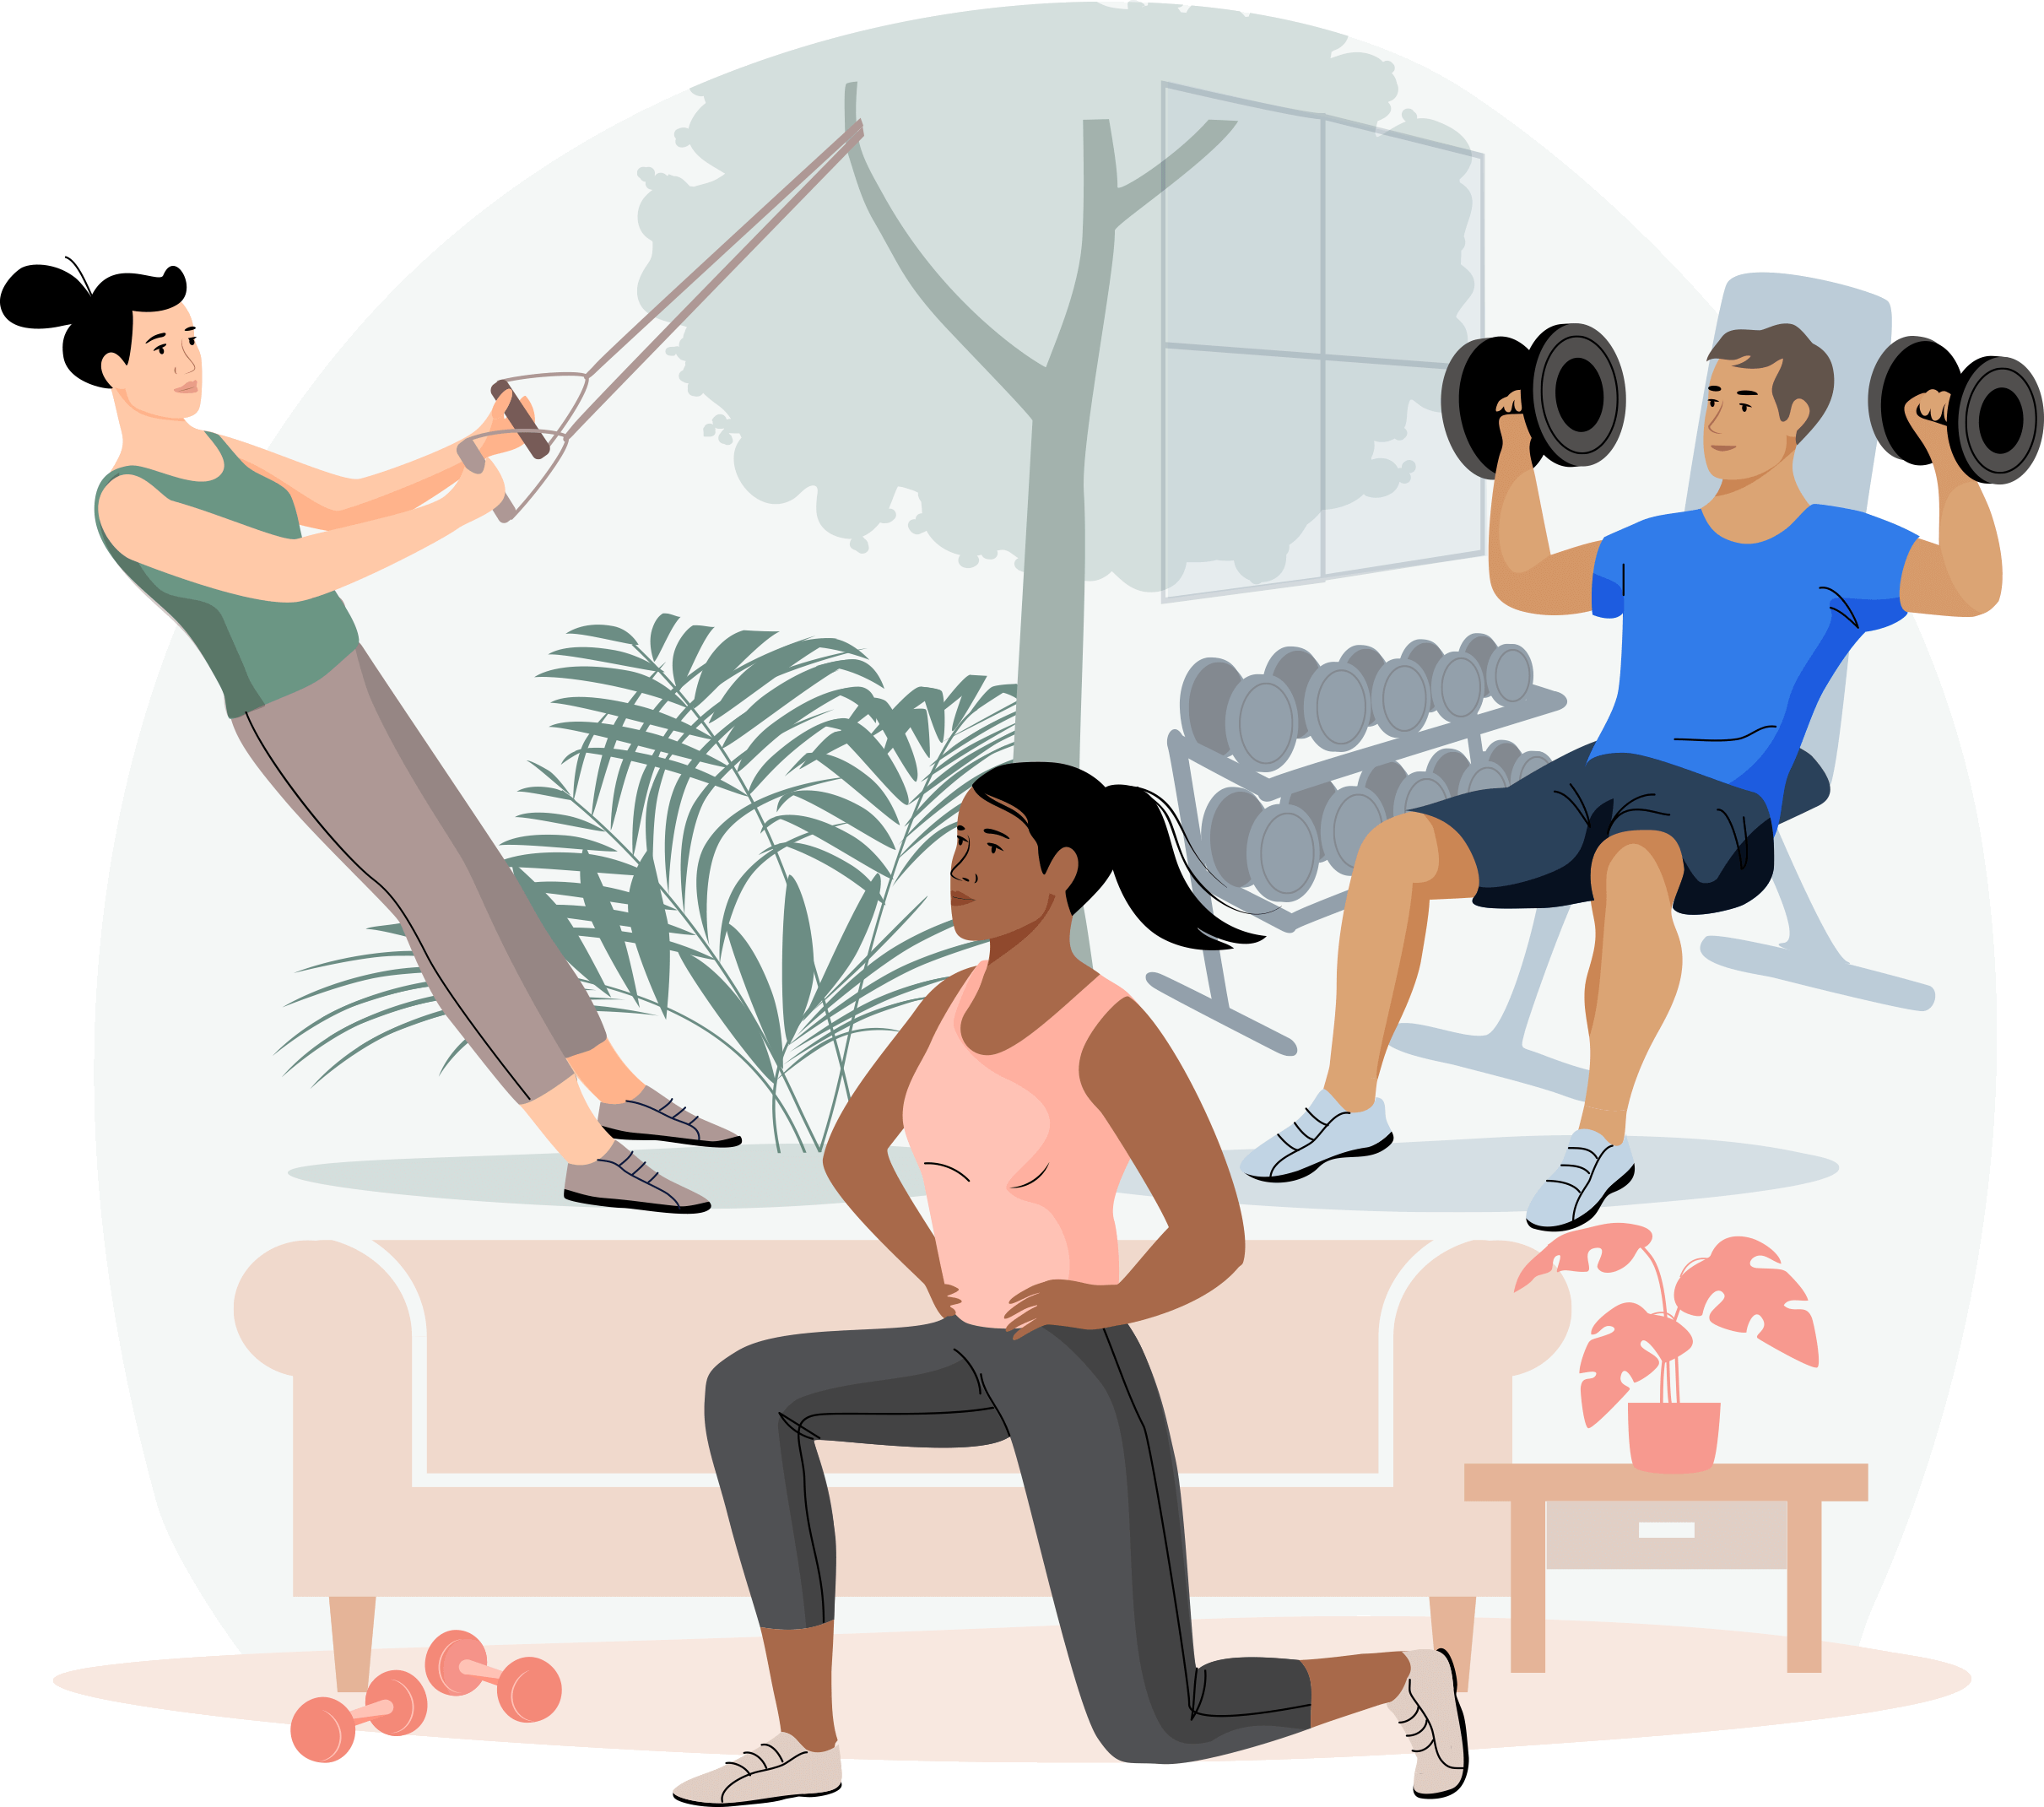 Personal Trainer Is That They Often Help People Stay on Track